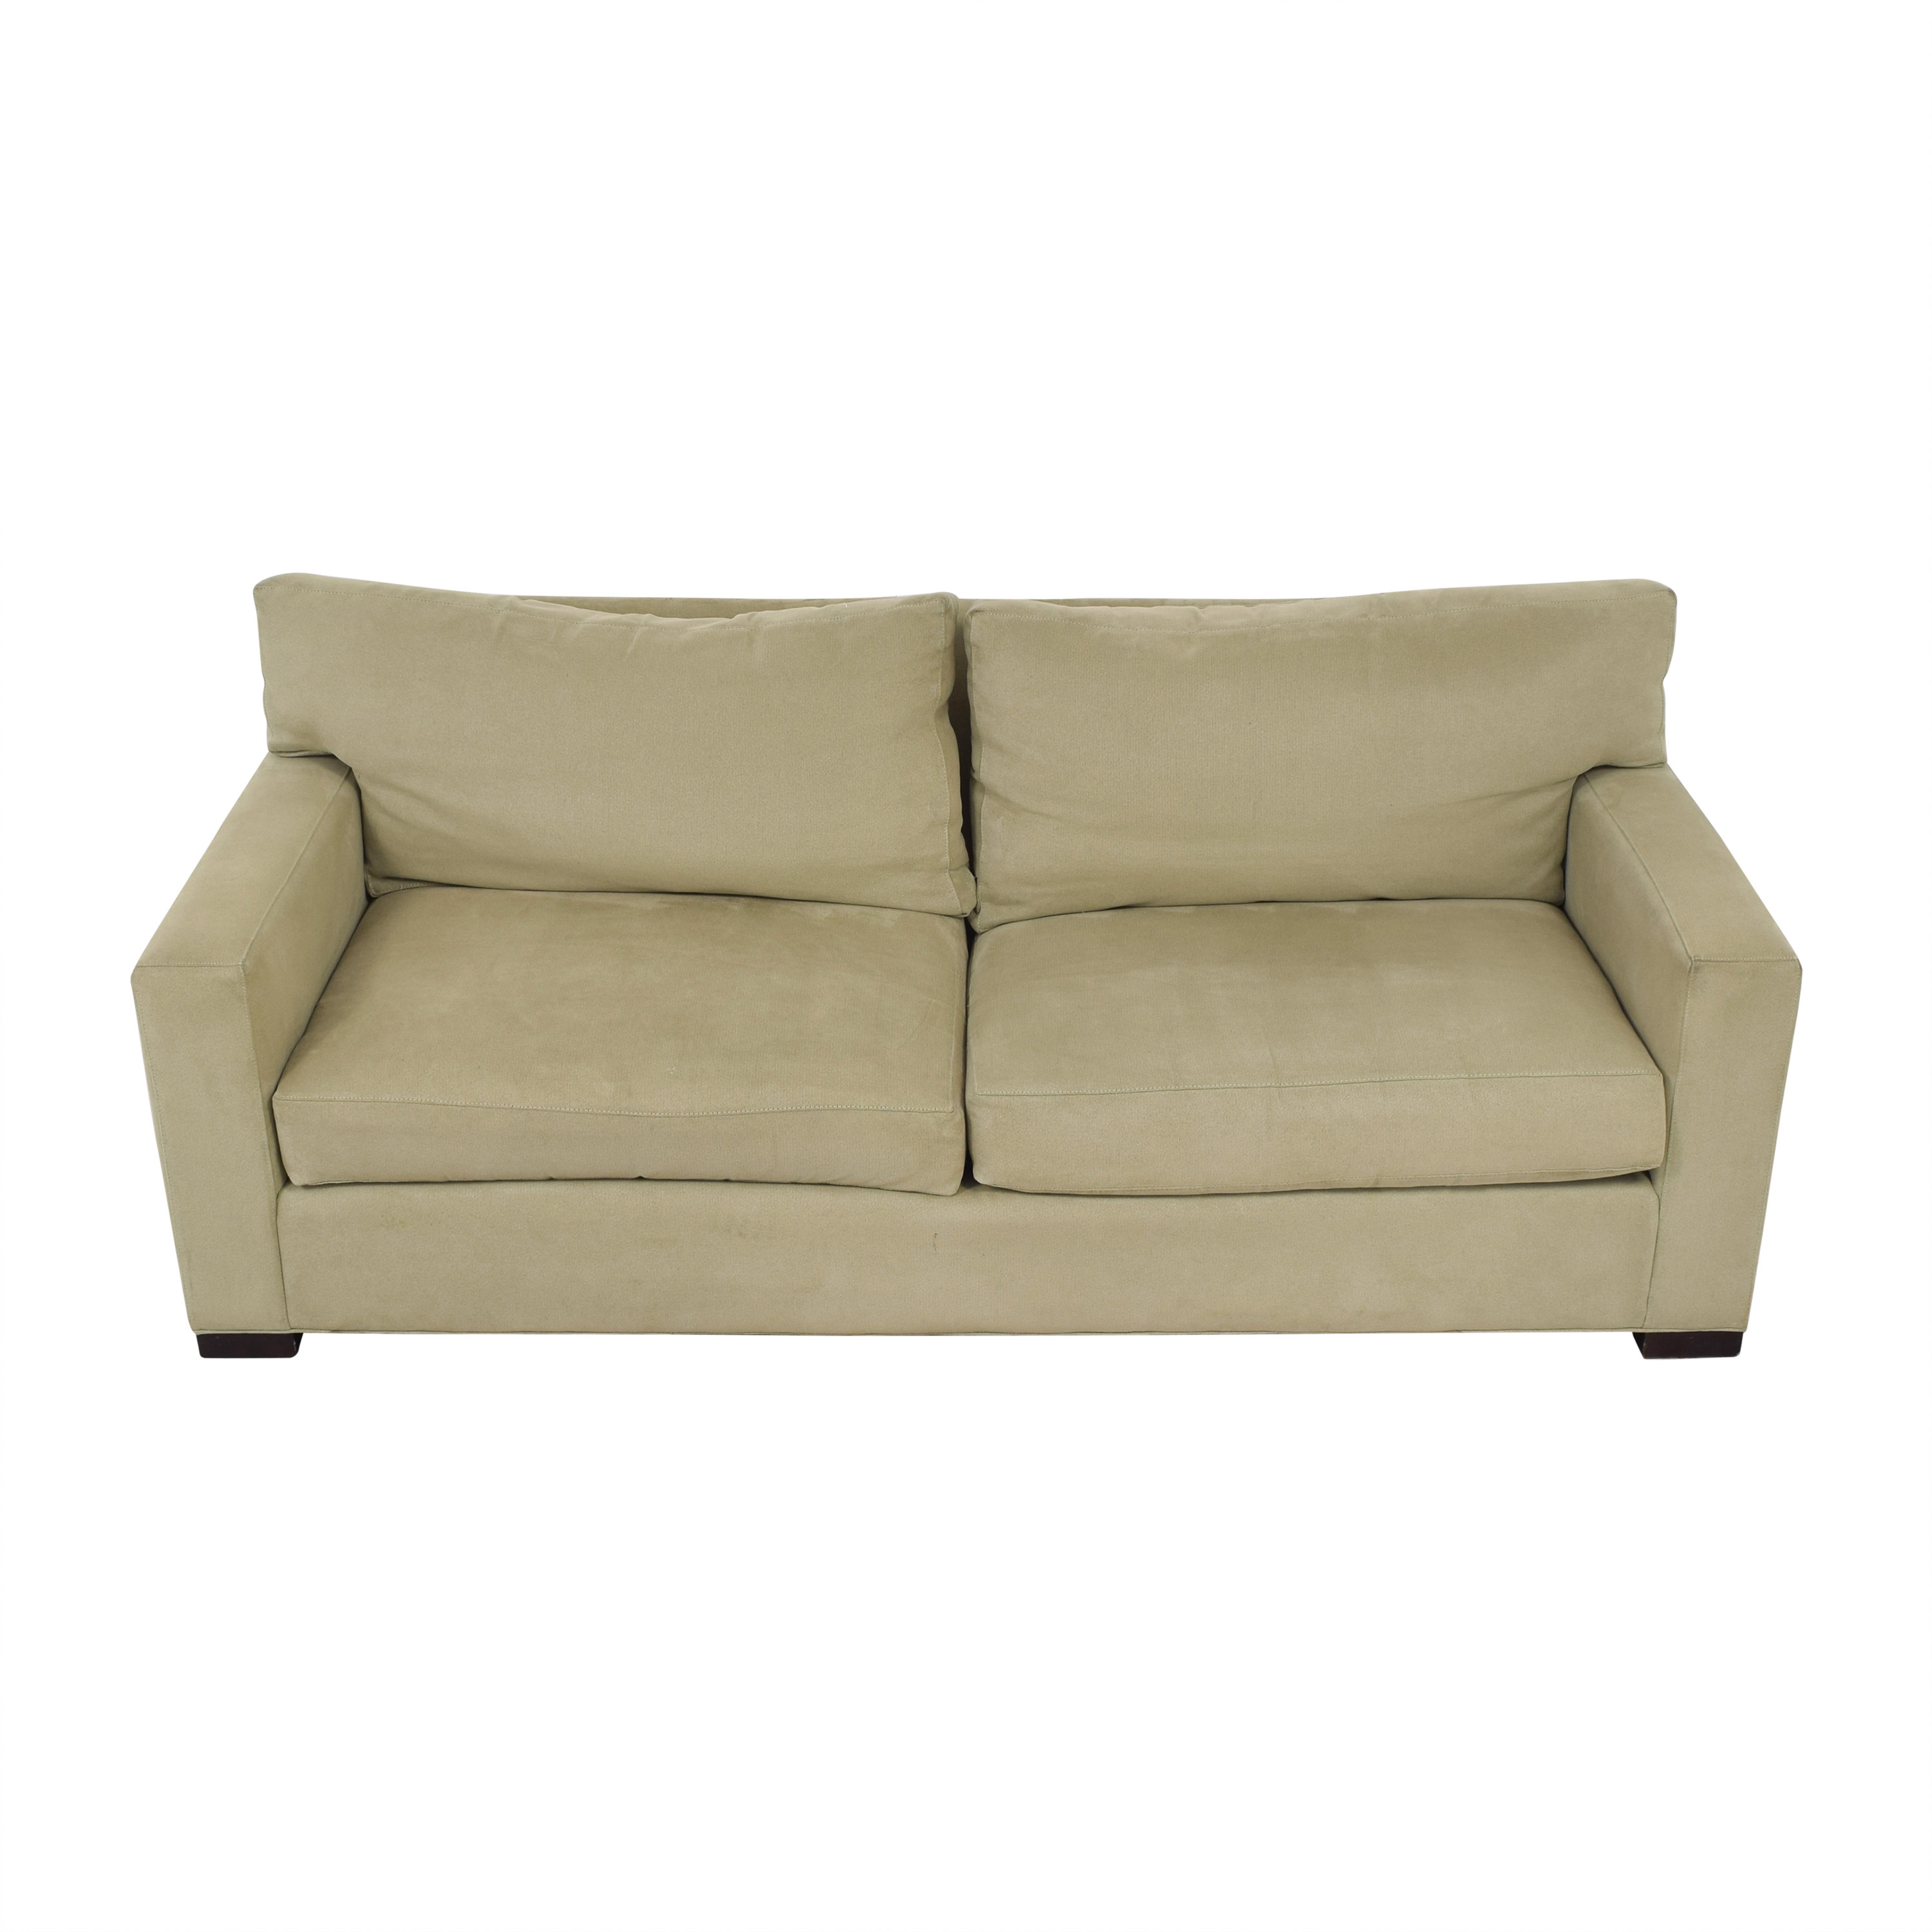 Crate & Barrel Crate & Barrel Axis II 2 Seat Sofa for sale